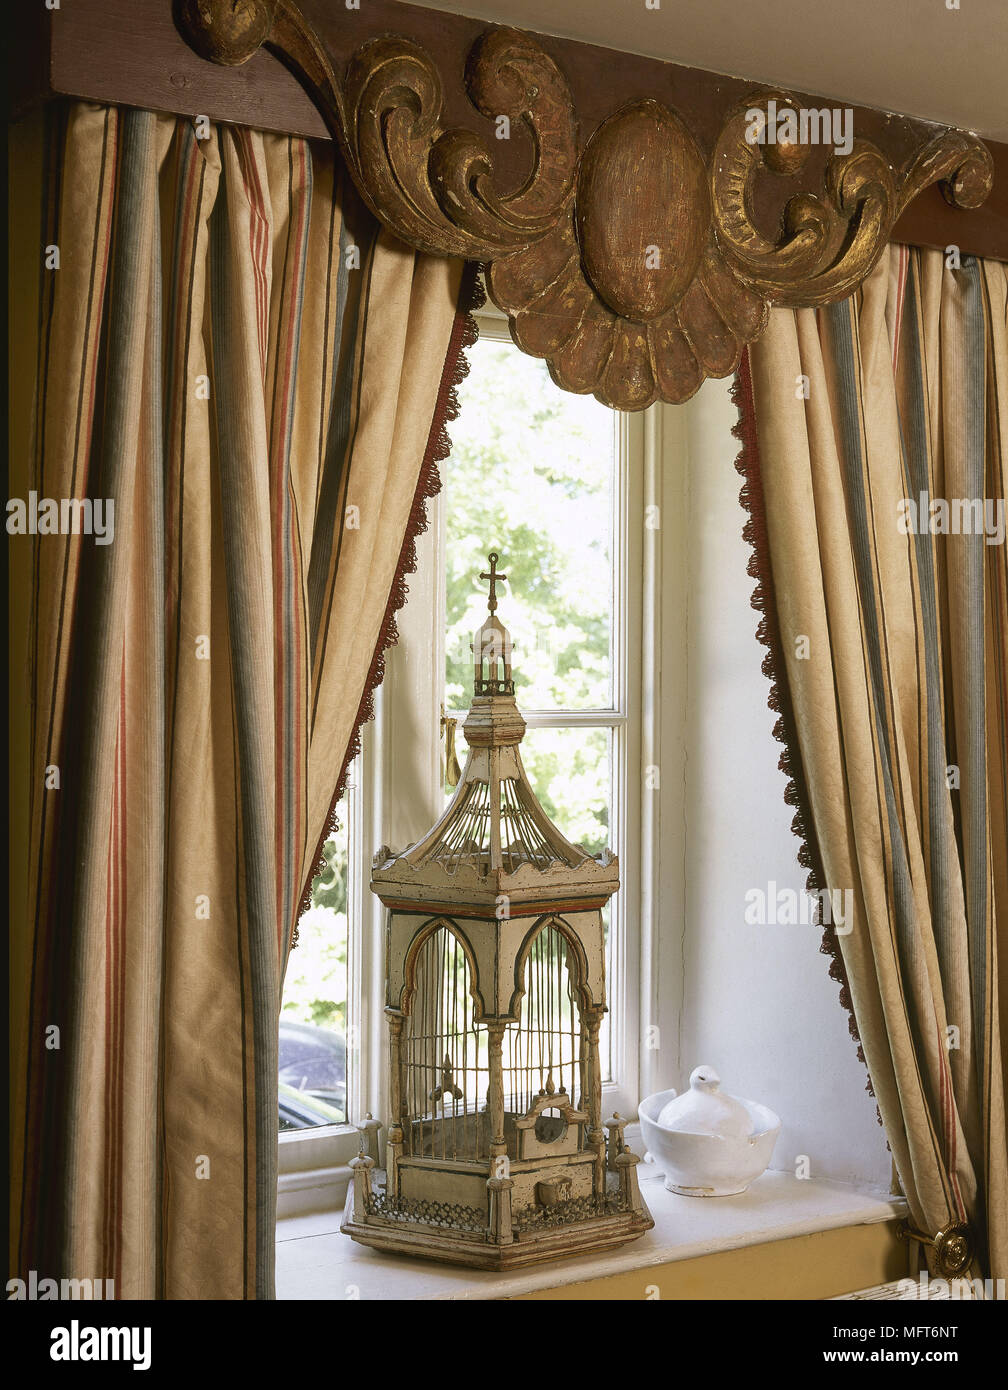 Window Gold Striped Curtains Carved Pelmet Antique Birdcage Interiors Detail Treatments Drapes